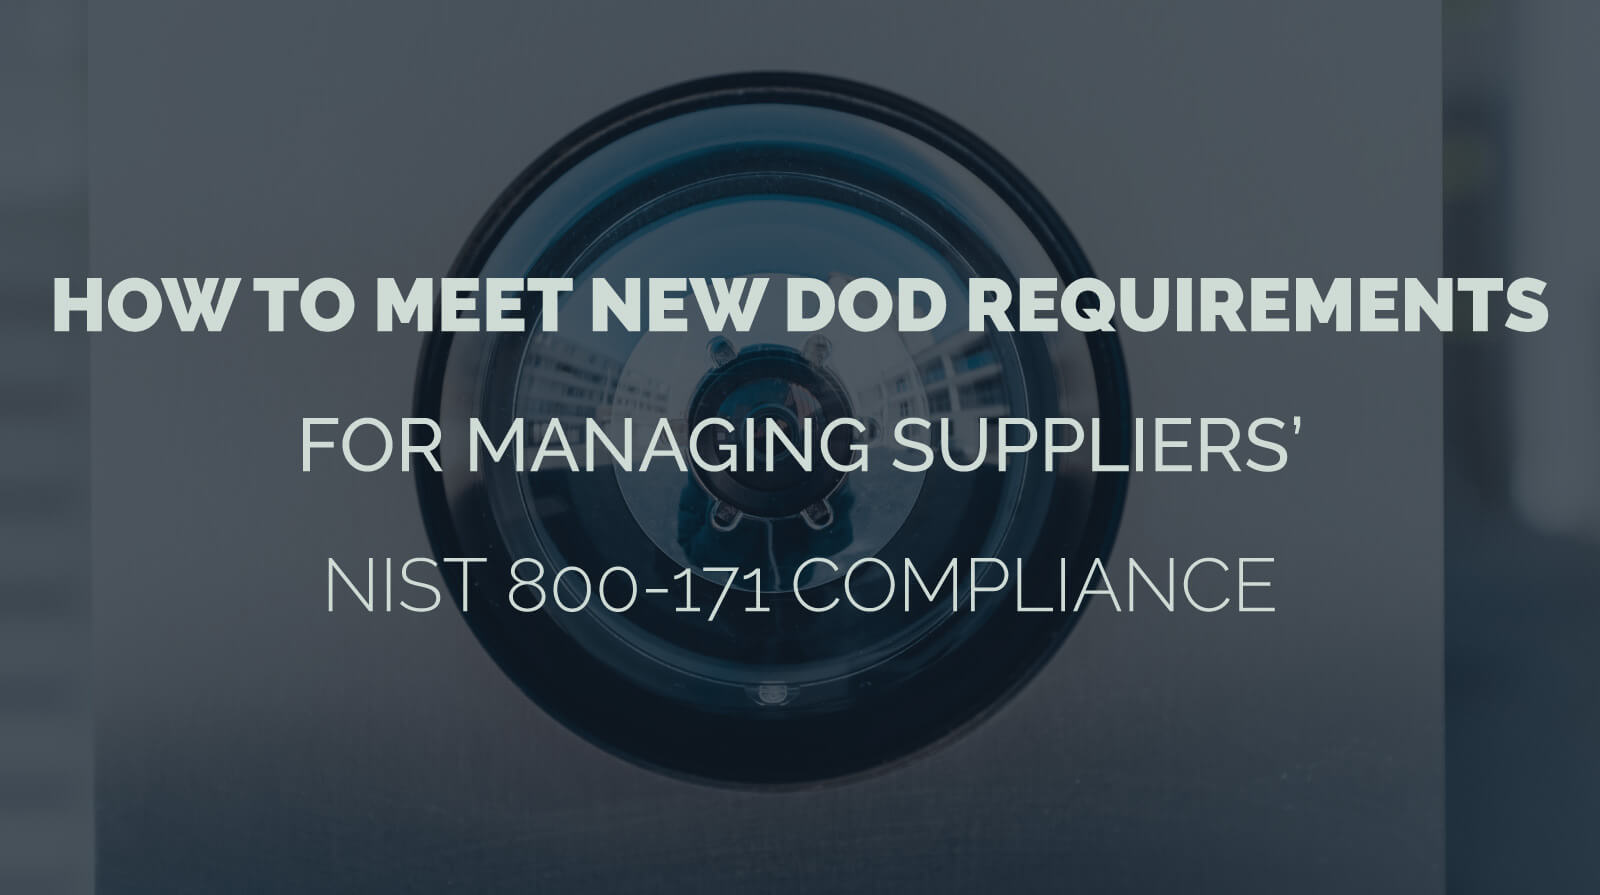 DoD requirements